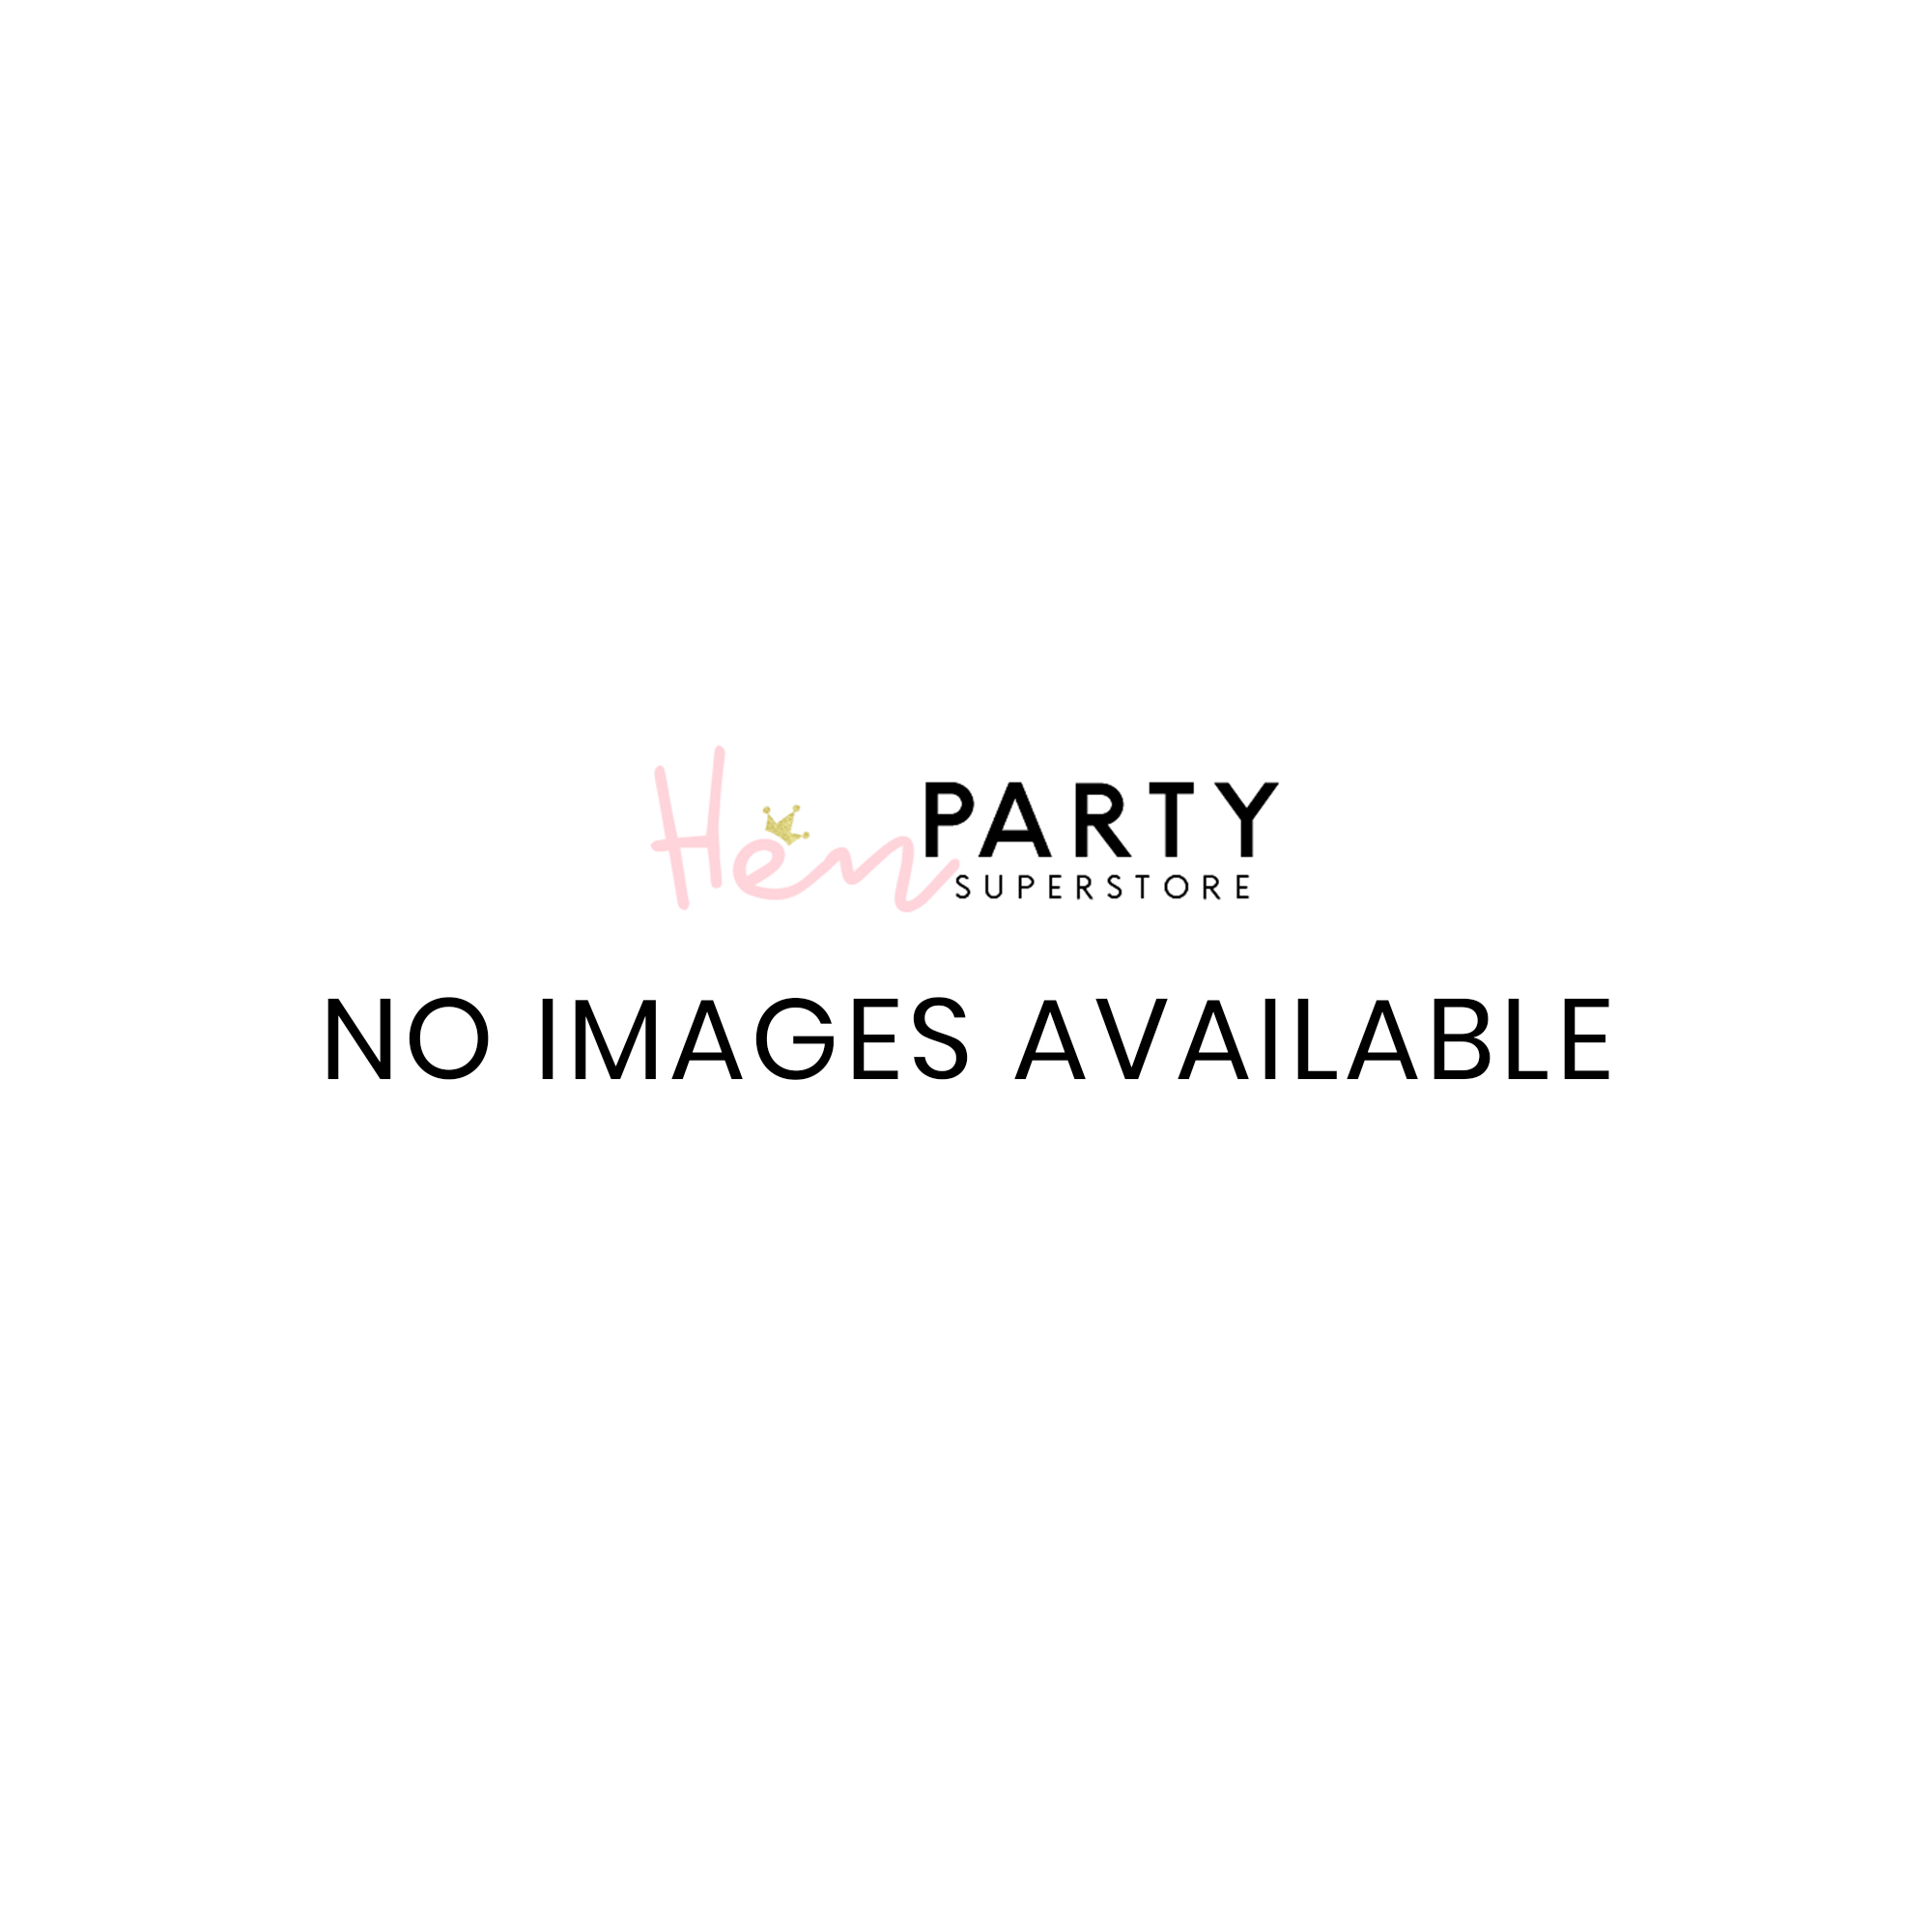 275cb26df7 Personalized Rose Gold Bride Tribe T-Shirts | Hen Party Superstore